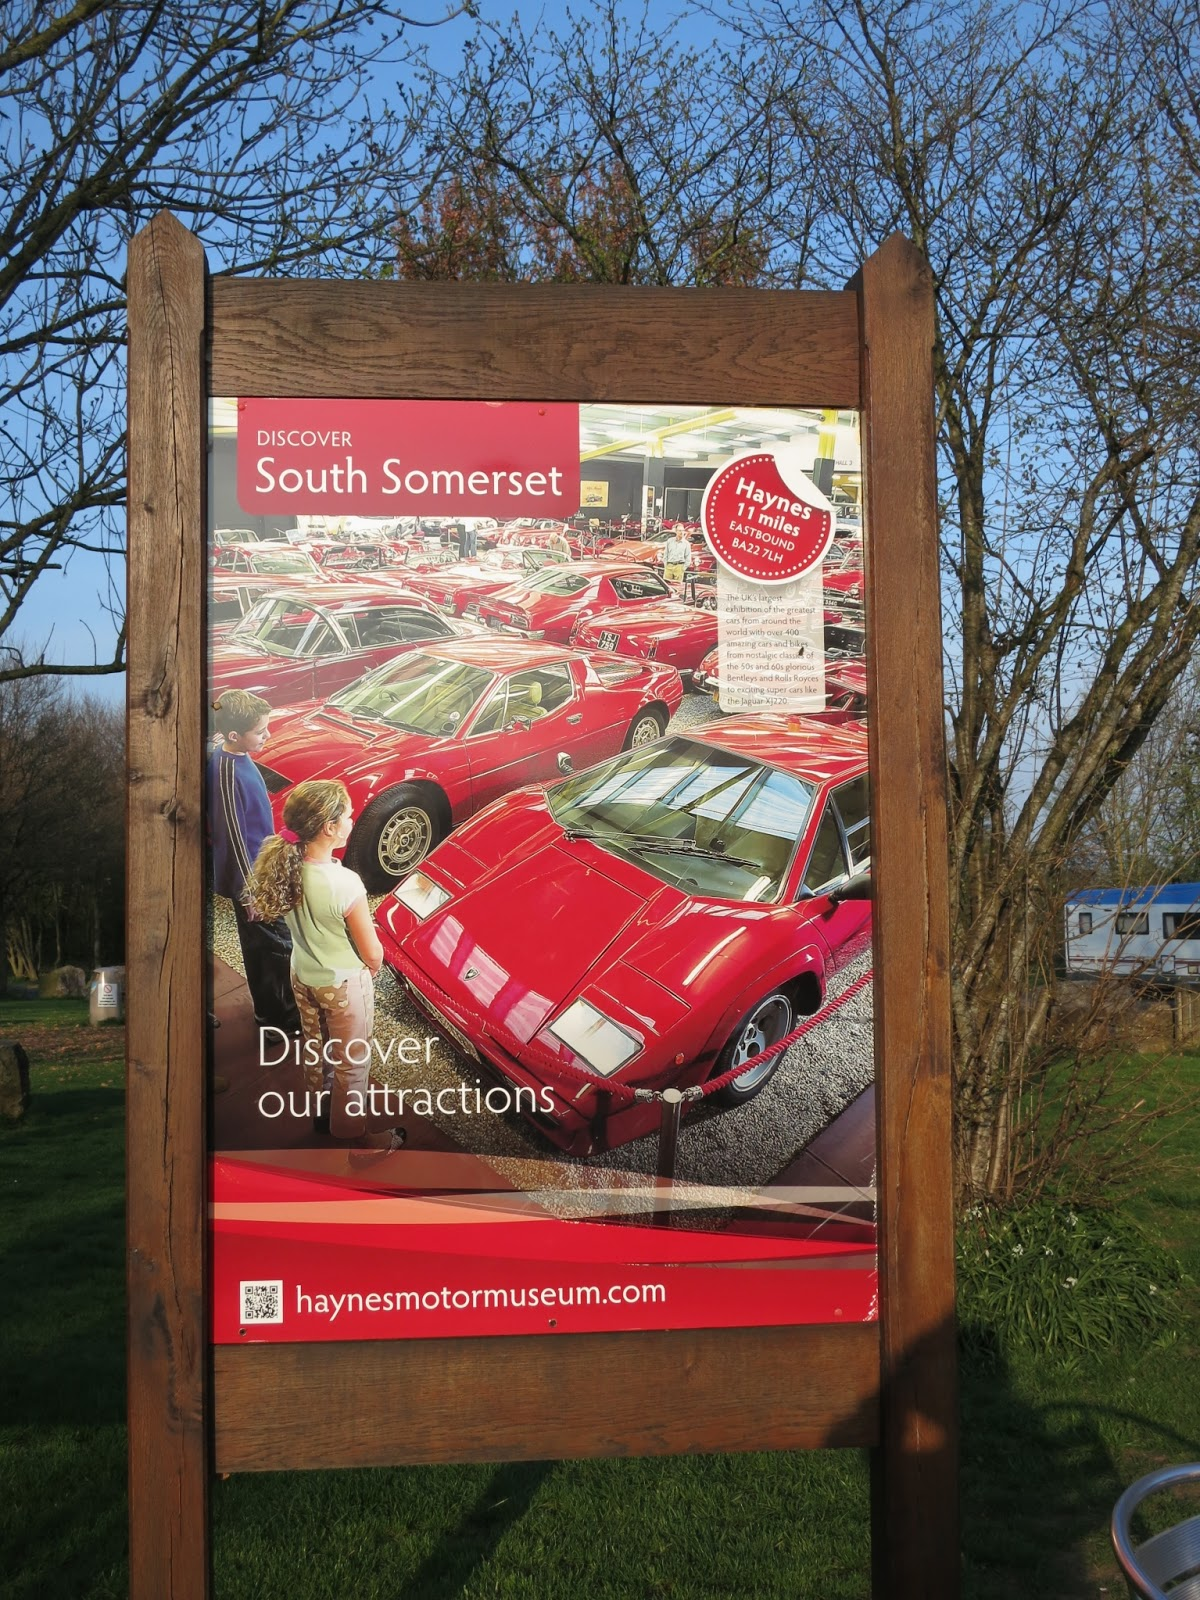 Large, free standing poster advertising Haynes Motor Museum as South Somerset visitor attraction